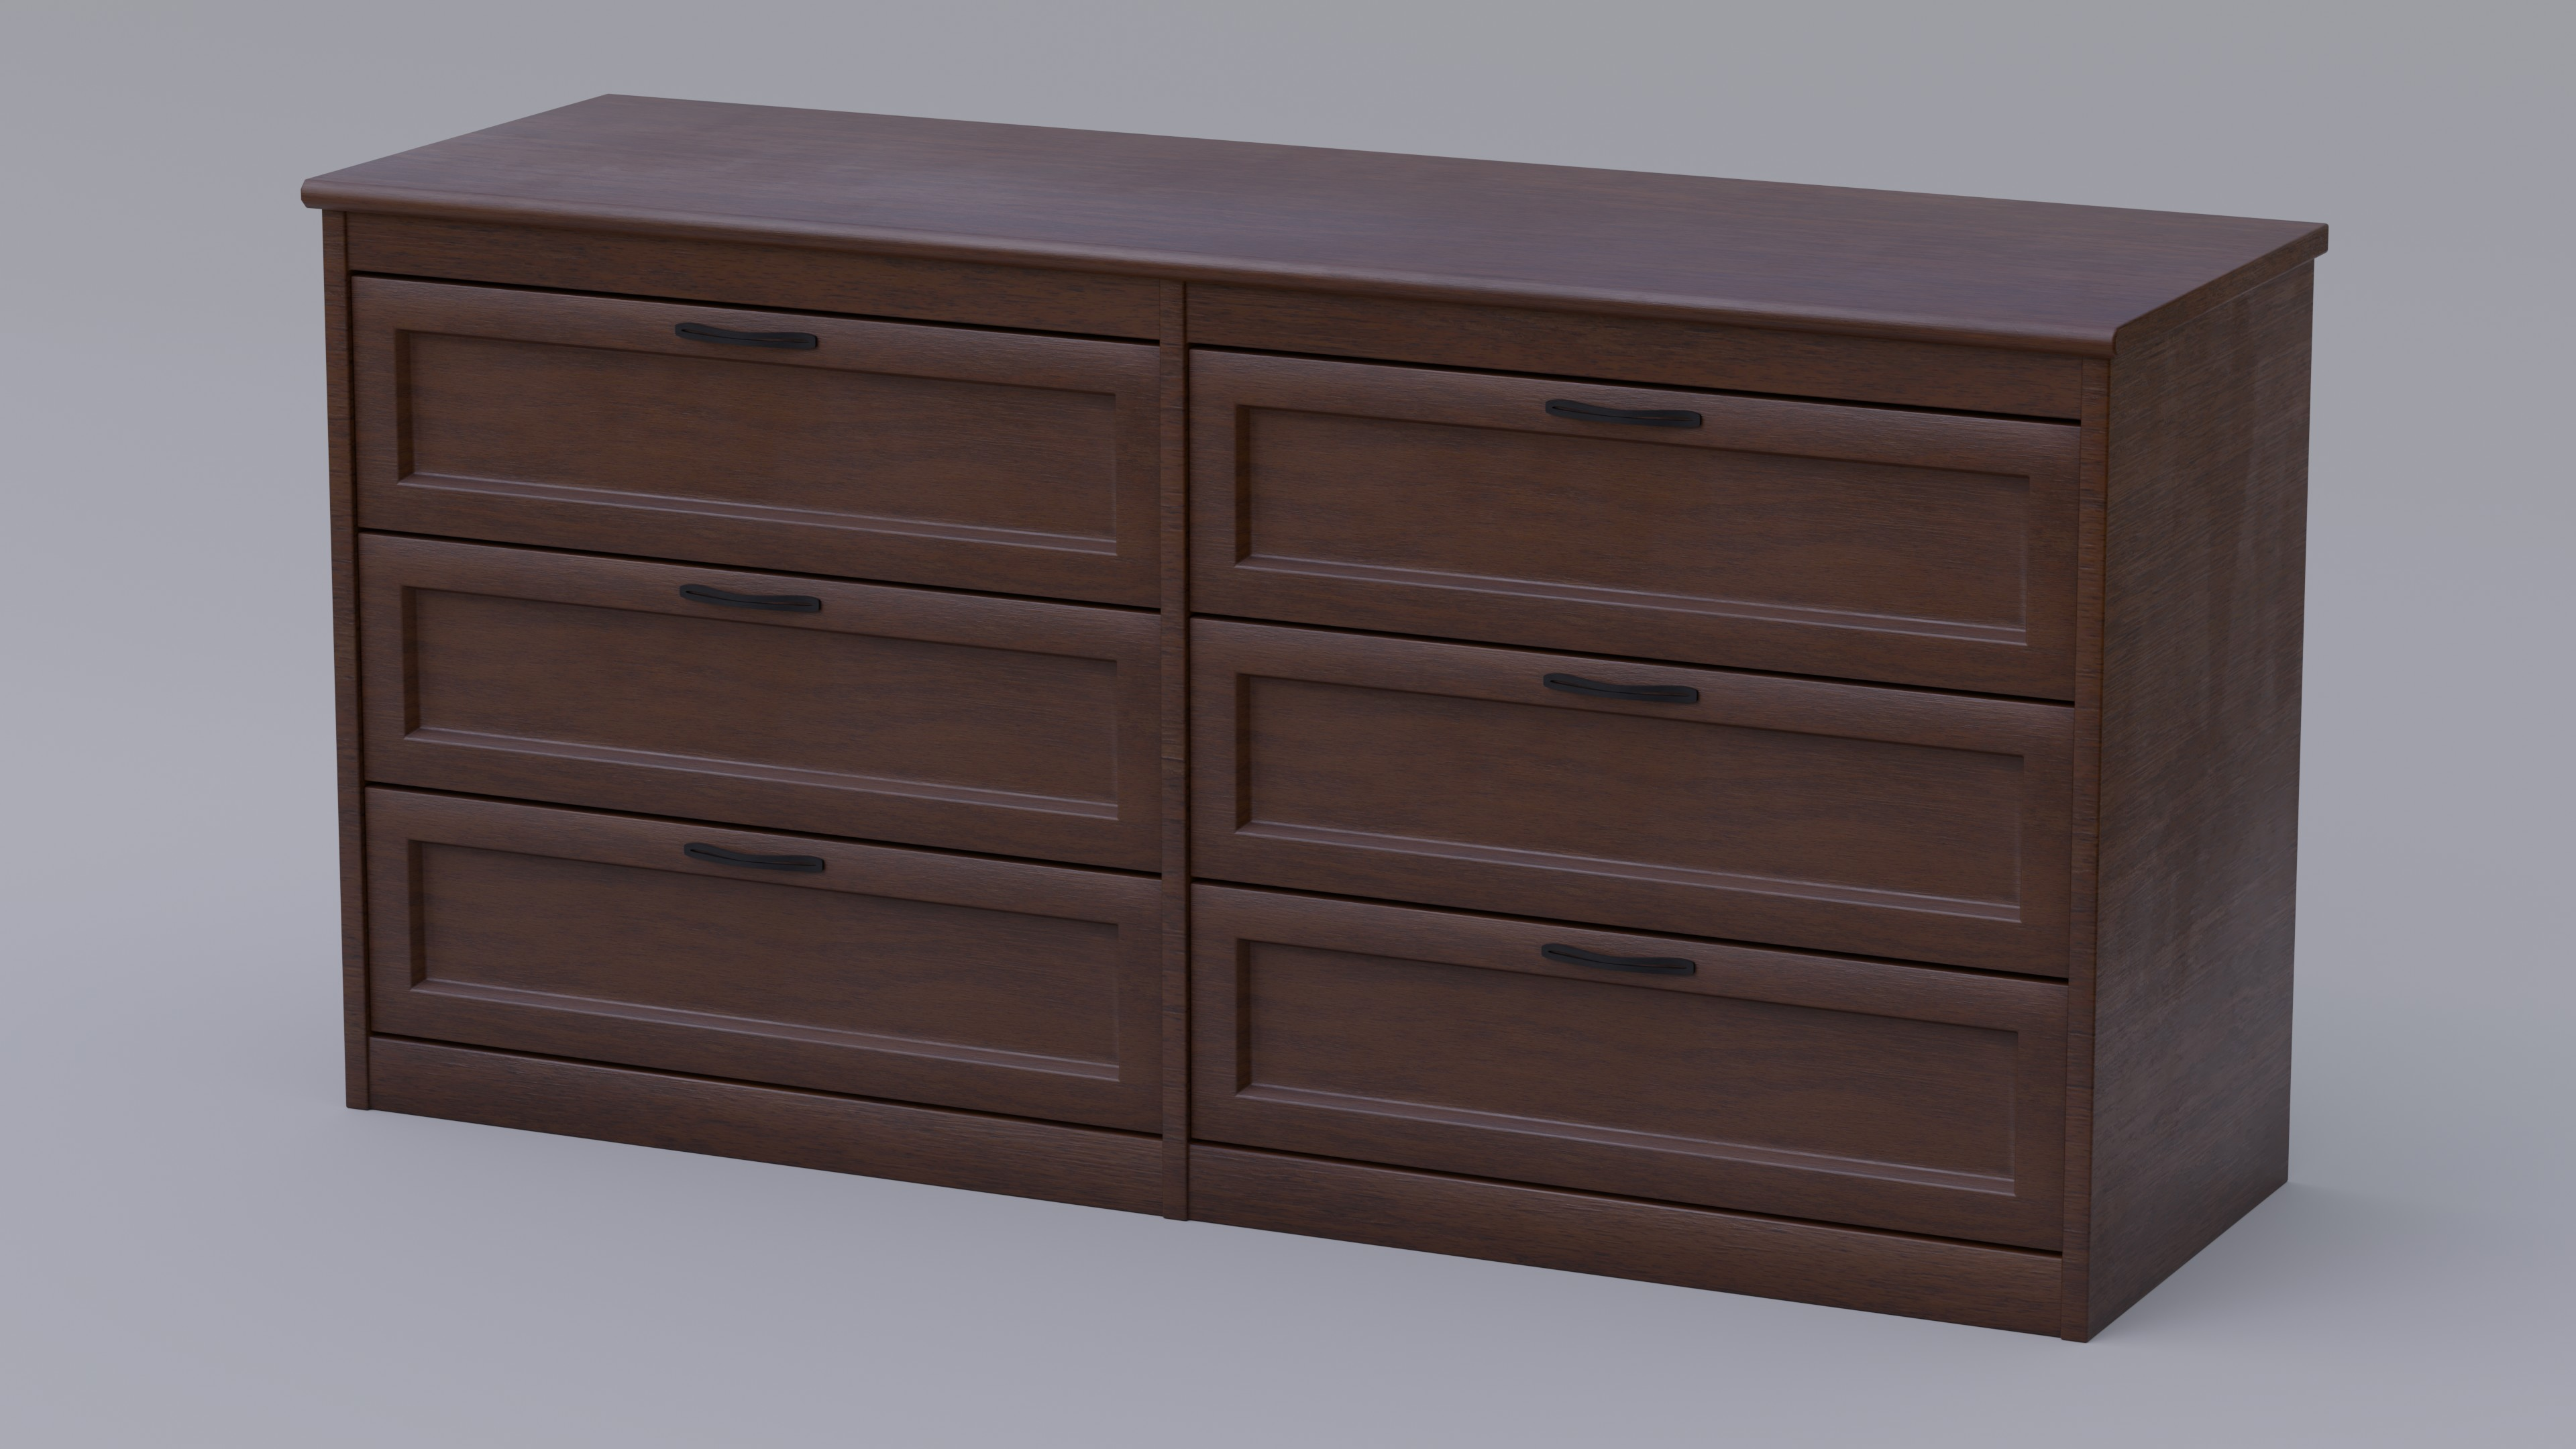 Dark Wood Dresser With Fully Modelled Drawers preview image 1